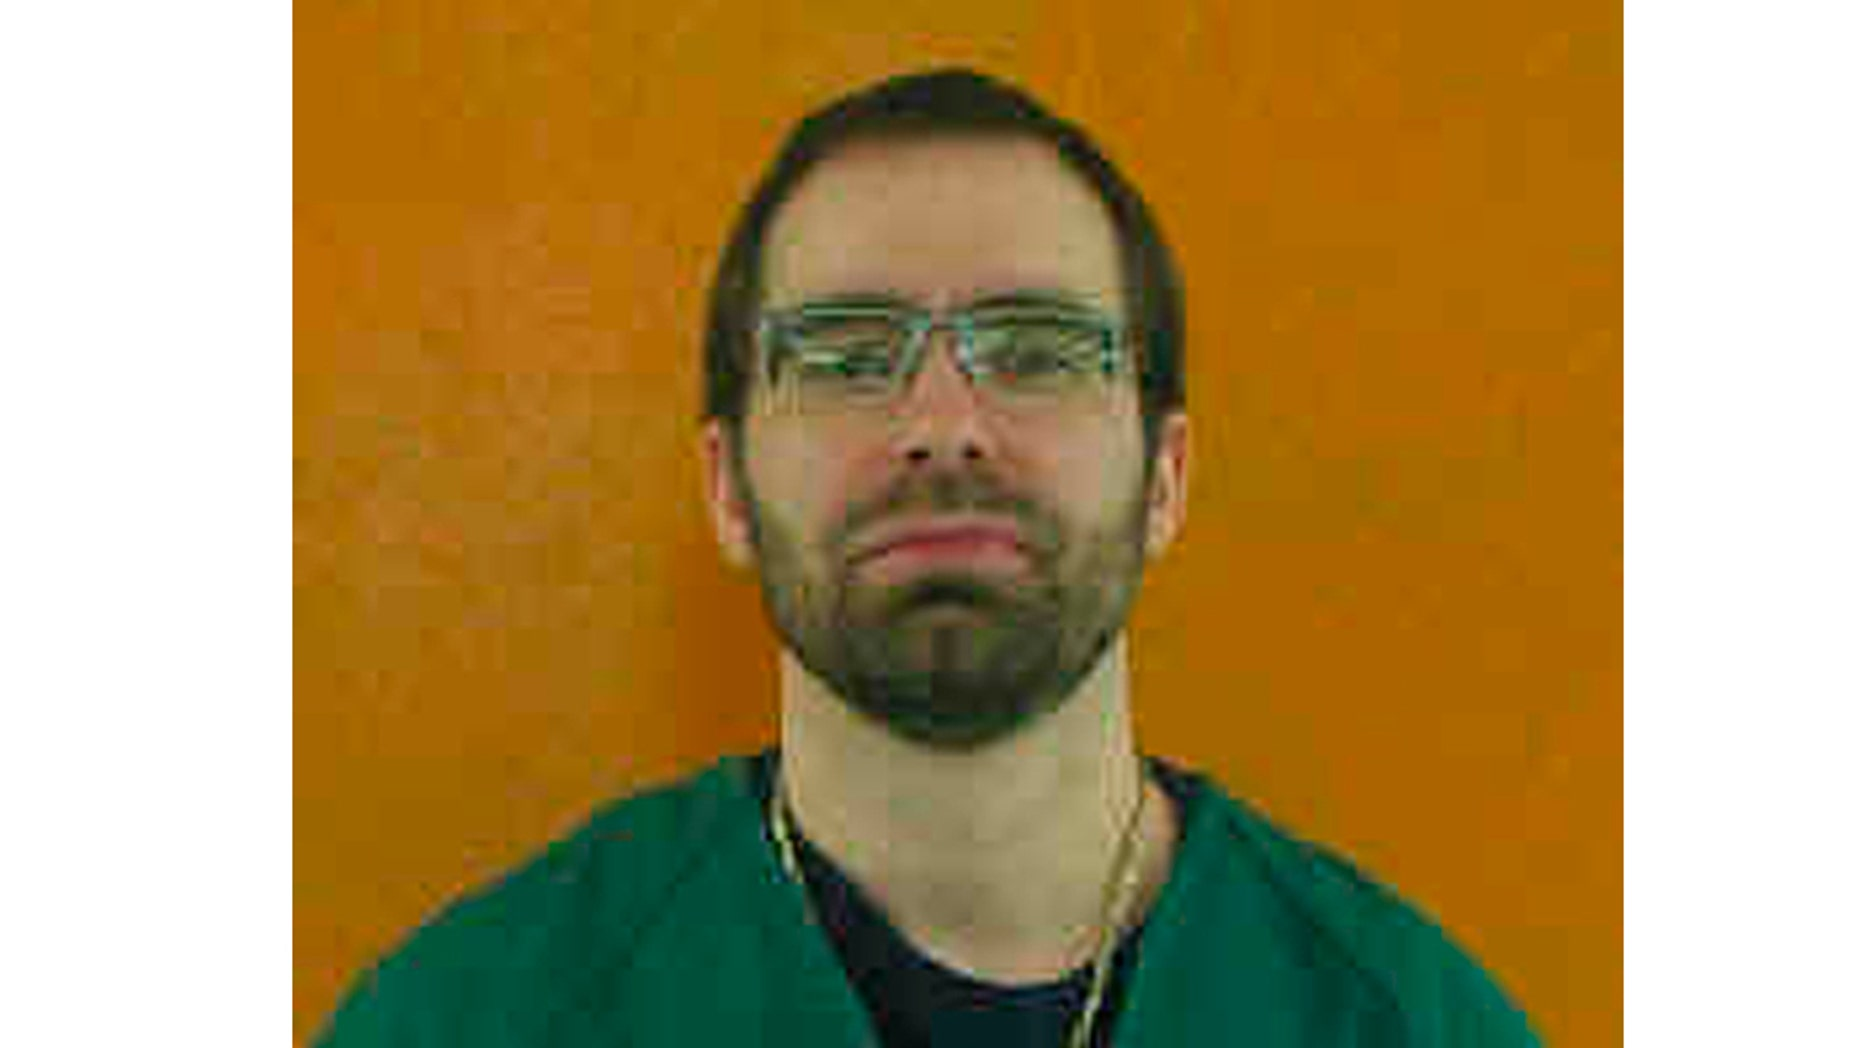 FILE - This undated file photo provided by the Ohio Department of Rehabilitation and Correction shows Greg Reinke. Reinke, who is serving life in prison for aggravated murder has been sentenced to 86 years more for a guard's stabbing last year and a 2017 stabbing that wounded four prisoners who were handcuffed to a table and unable to defend themselves. The Scioto County prosecutor's office says Reinke changed his plea to guilty last week of March 25, 2019,  on charges including attempted murder for the attacks at the Southern Ohio Correctional Facility in Lucasville.  (Ohio Department of Rehabilitation and Correction via AP, File)